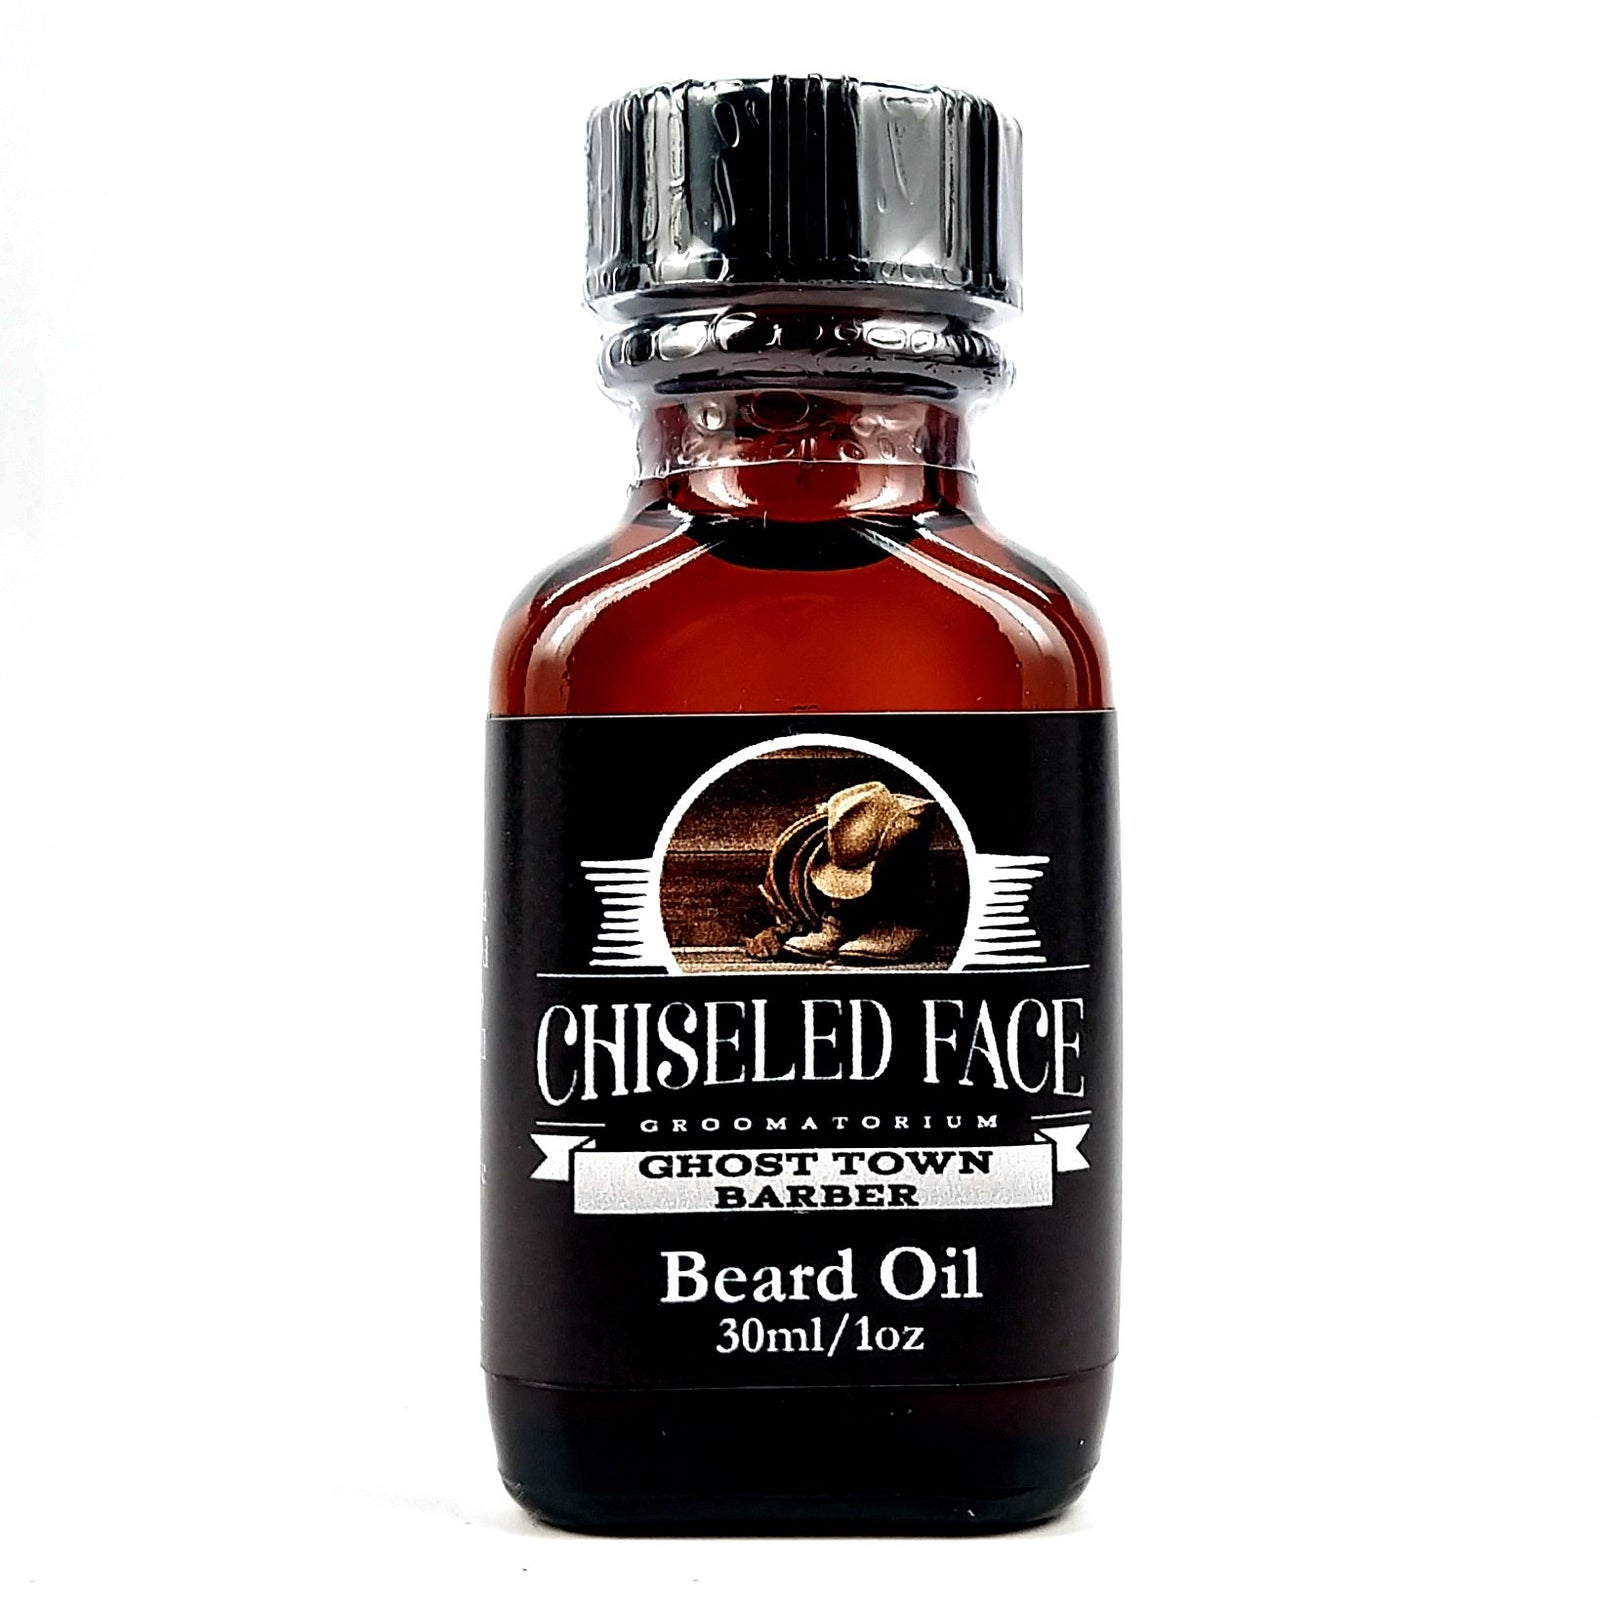 Chiseled face - Ghost Town Barber Beard Oil, 1oz